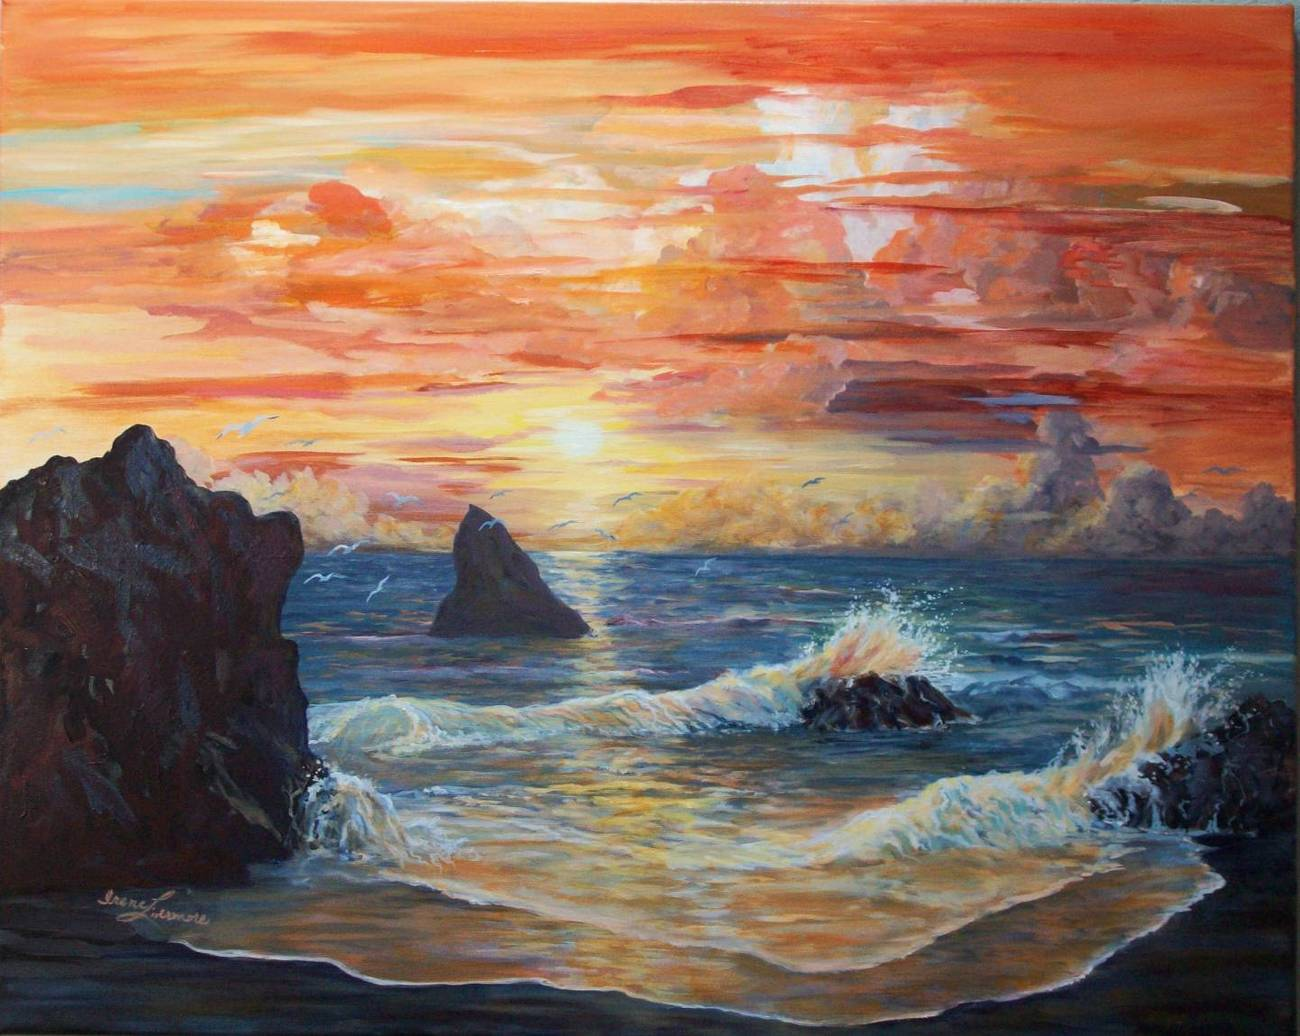 Oregon Coast Sunset Beach Realistic Seascape Original Oil Painting on canvas